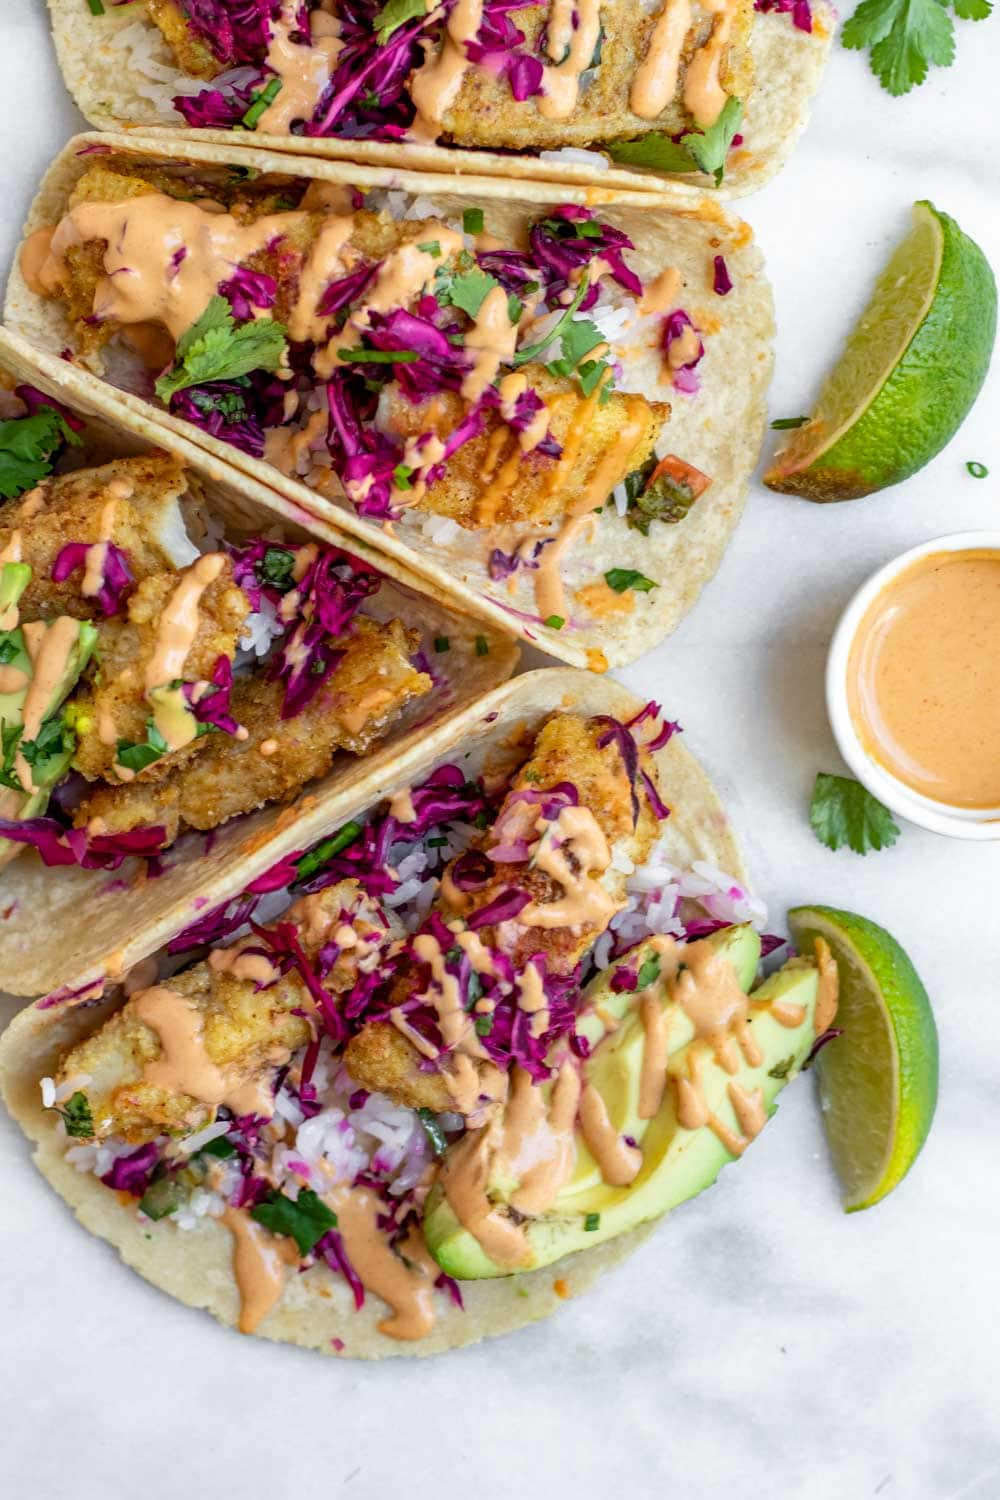 Baked cod fish tacos with spicy tahini dressing drizzled on top.